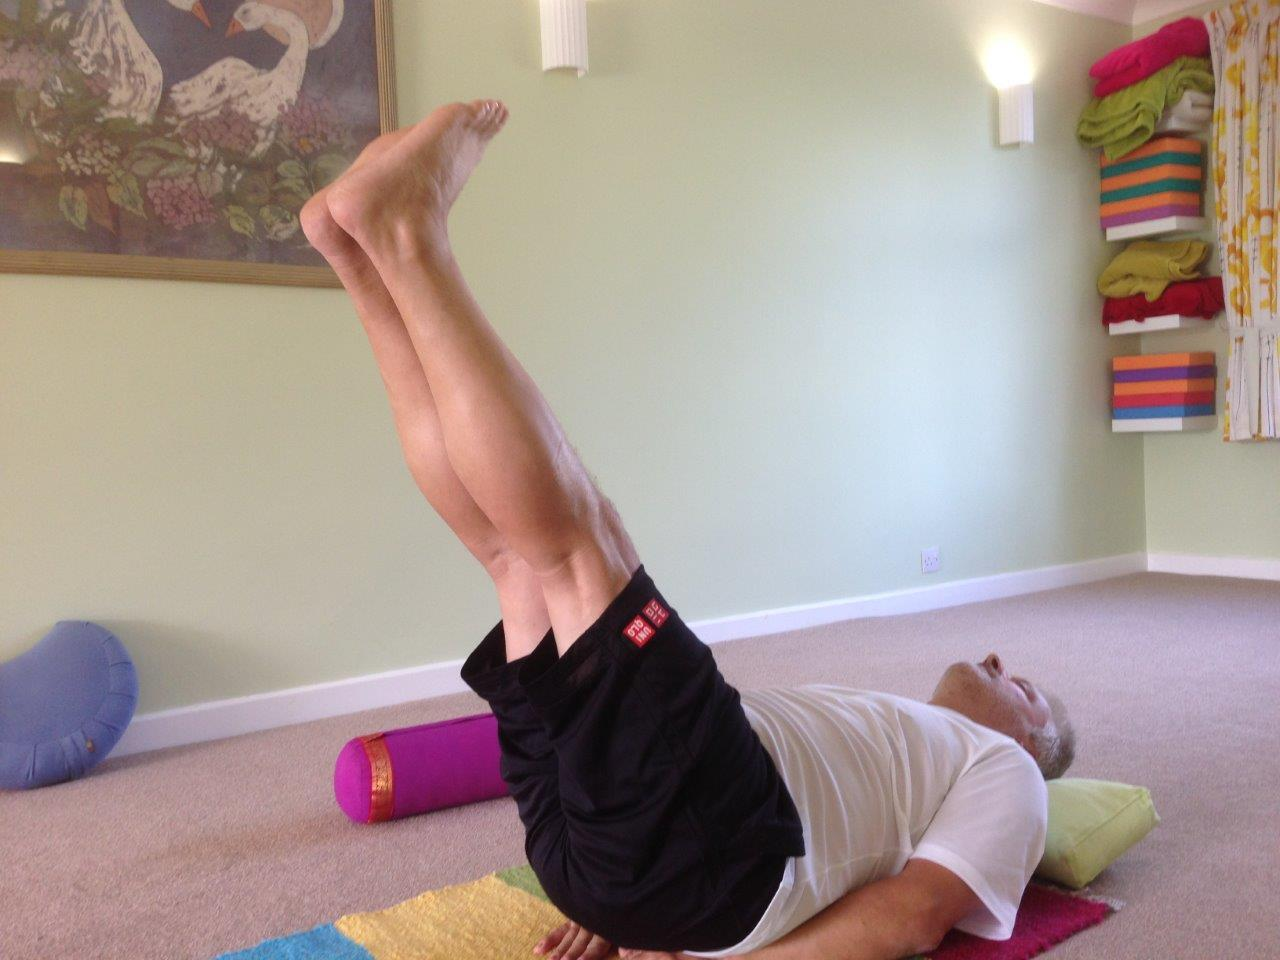 Man lying on back lifting 2 legs up together